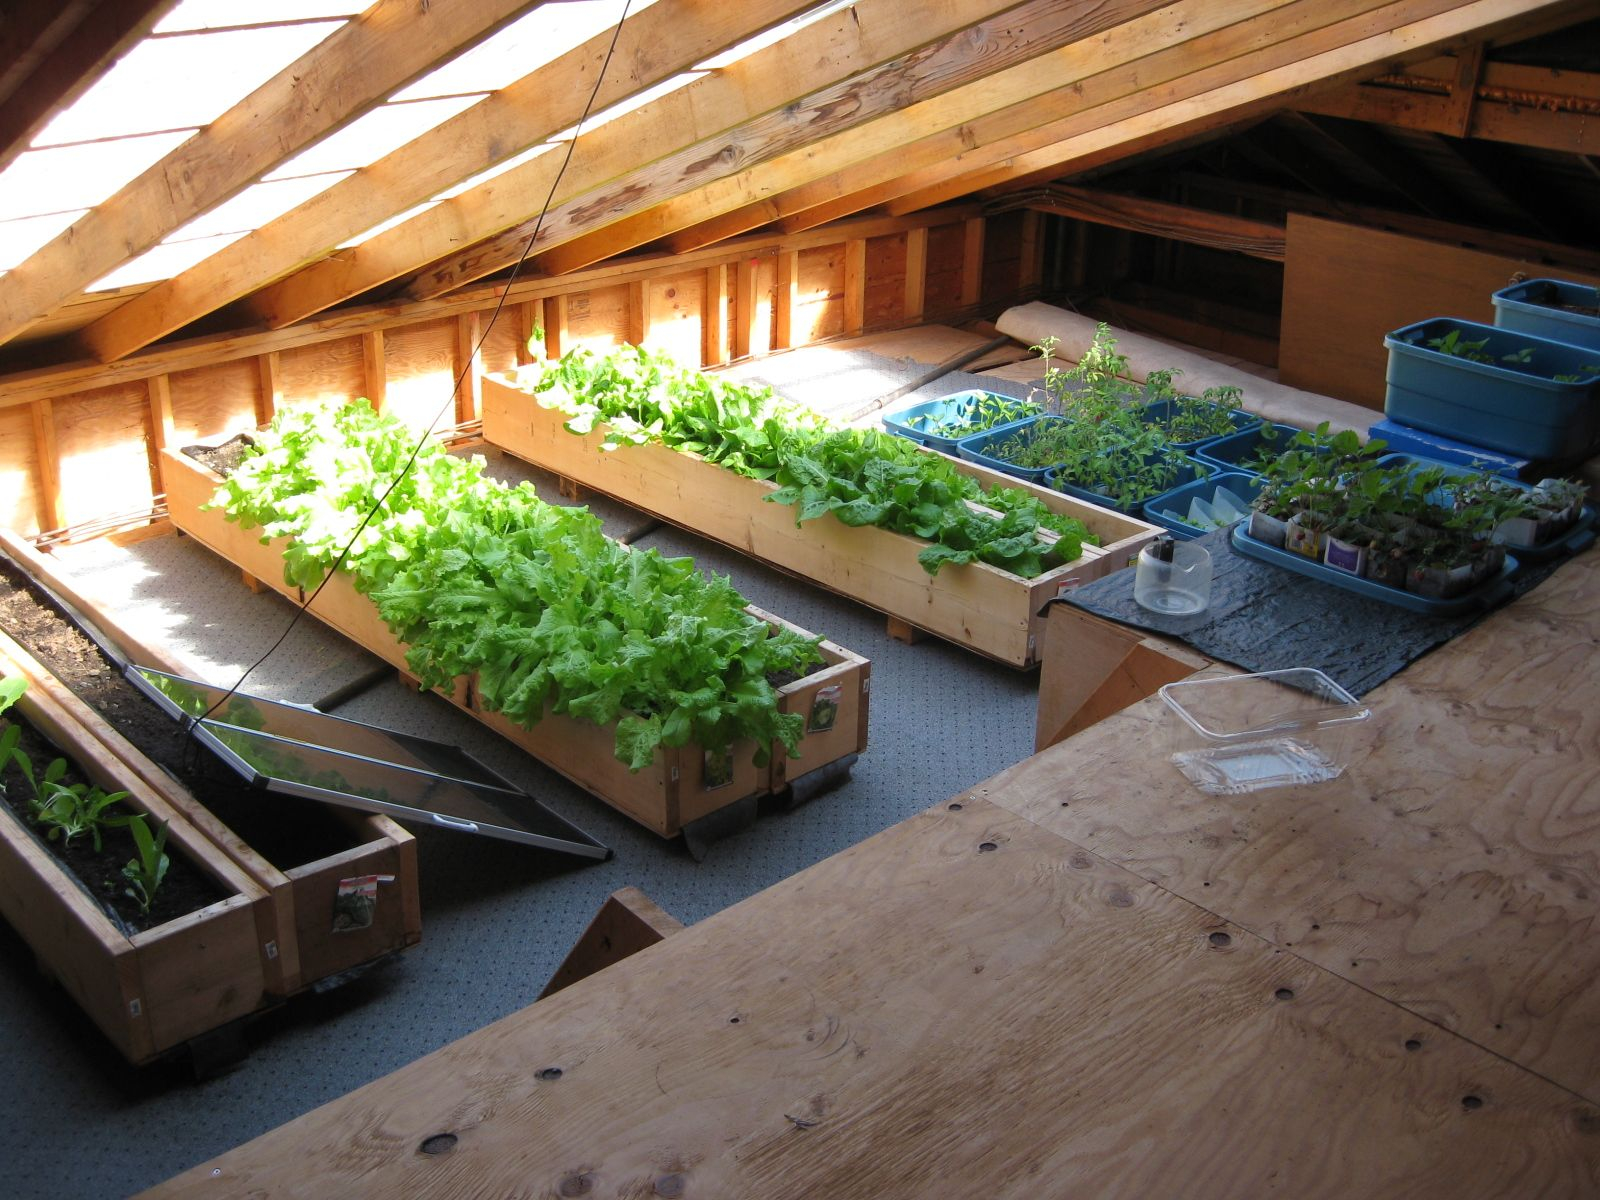 Build A Solar Attic For Heating Cooling And Growing Plants Growing Plants Plants Natural Building